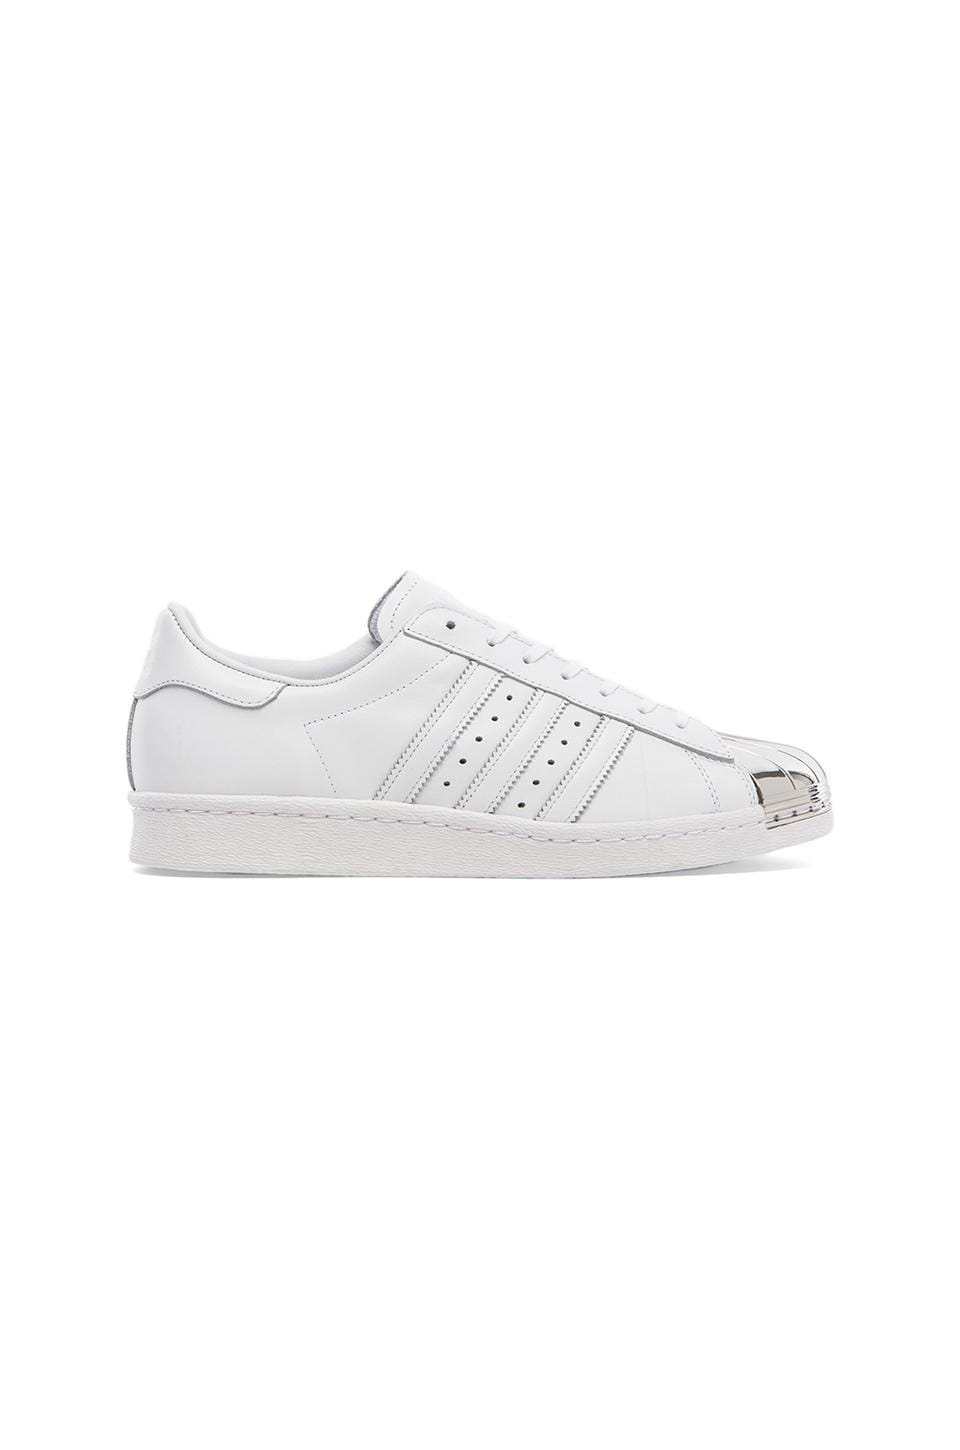 adidas Originals BLUE Superstar 80's Metal Toe Sneaker in White & Silver